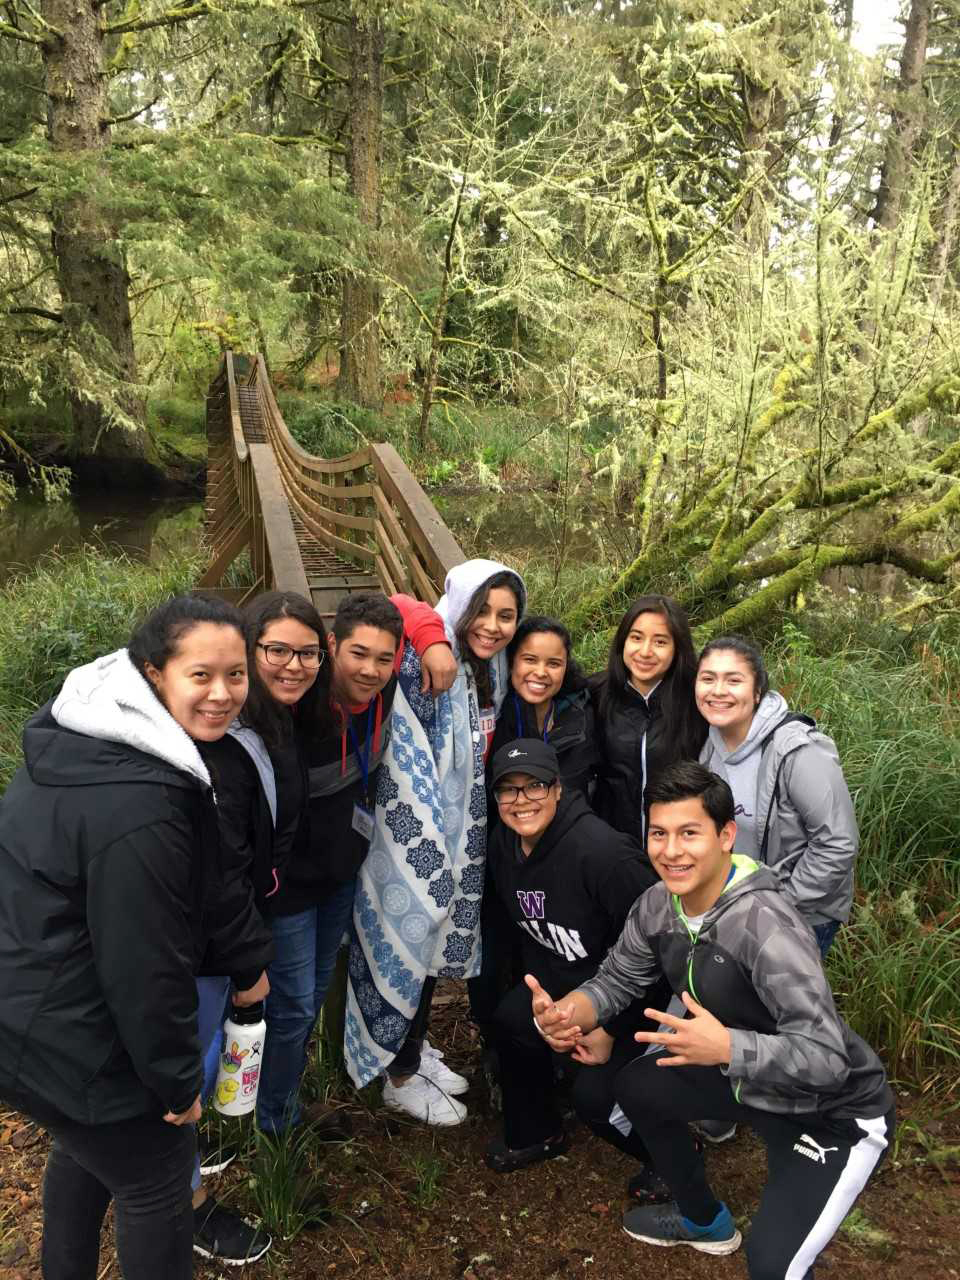 A group of nine Latinx youth pose in front of a wooden bridge surrounded by trees and other greenery.